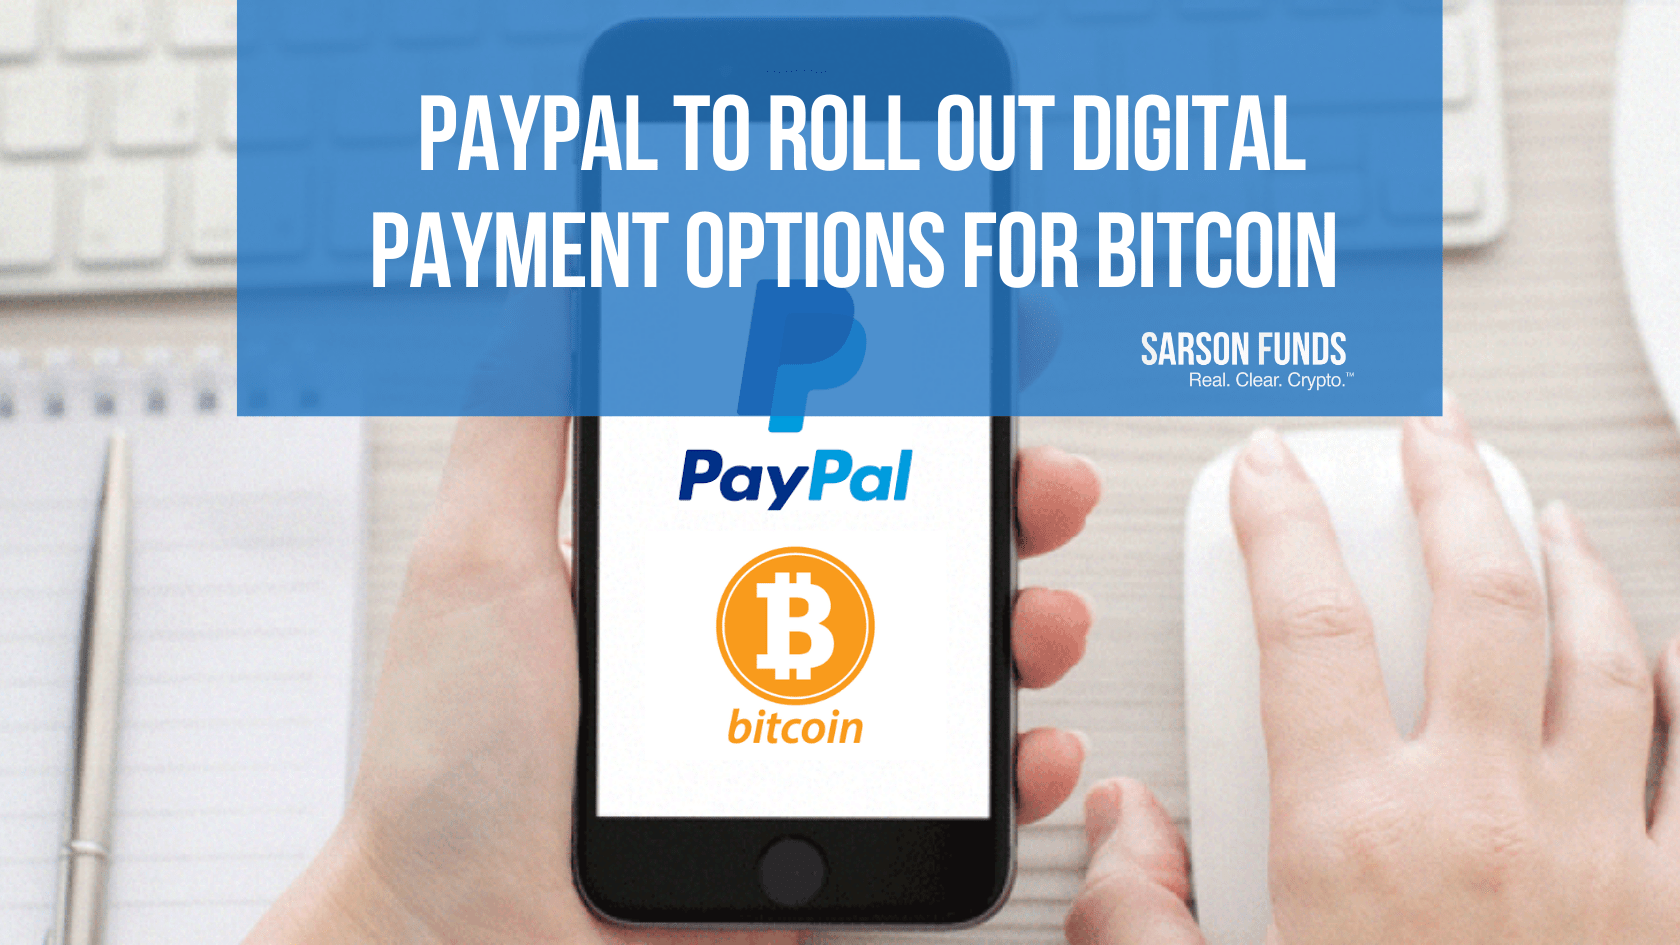 PayPal Will Soon Offer Payment Options for Digital Assets